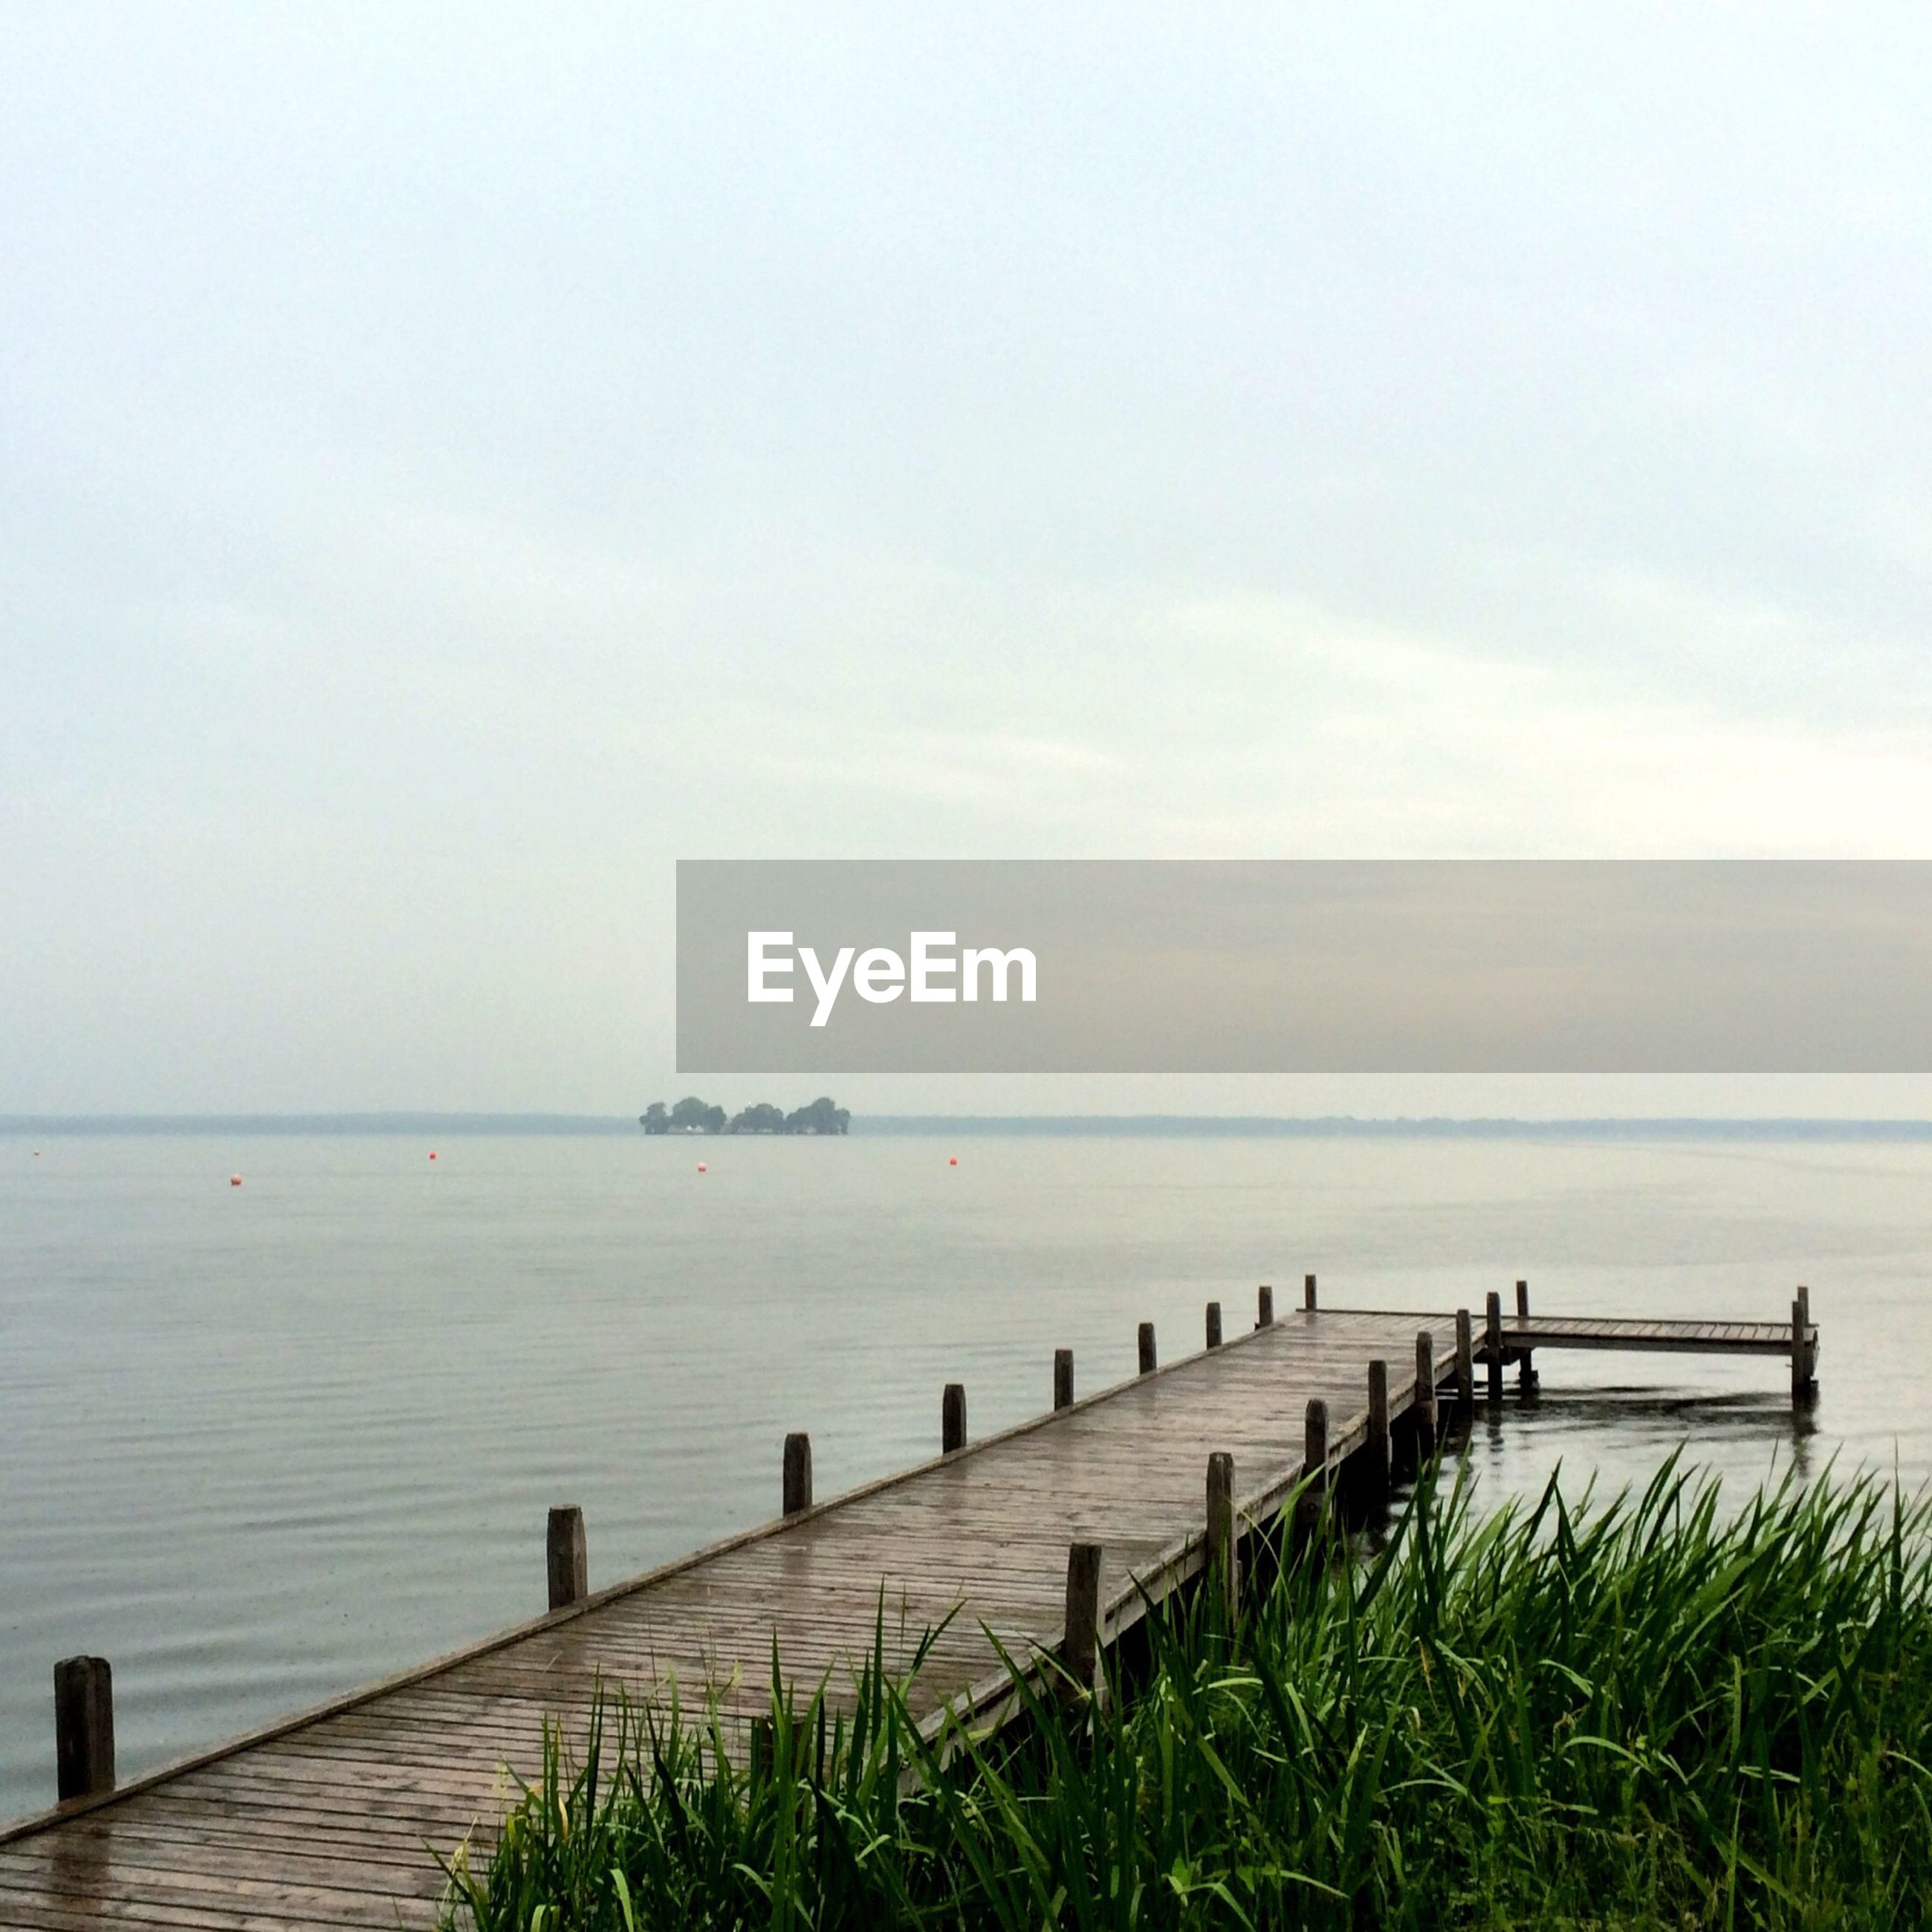 sea, water, horizon over water, tranquil scene, tranquility, scenics, sky, beauty in nature, nature, grass, idyllic, pier, beach, day, calm, outdoors, copy space, shore, ocean, seascape